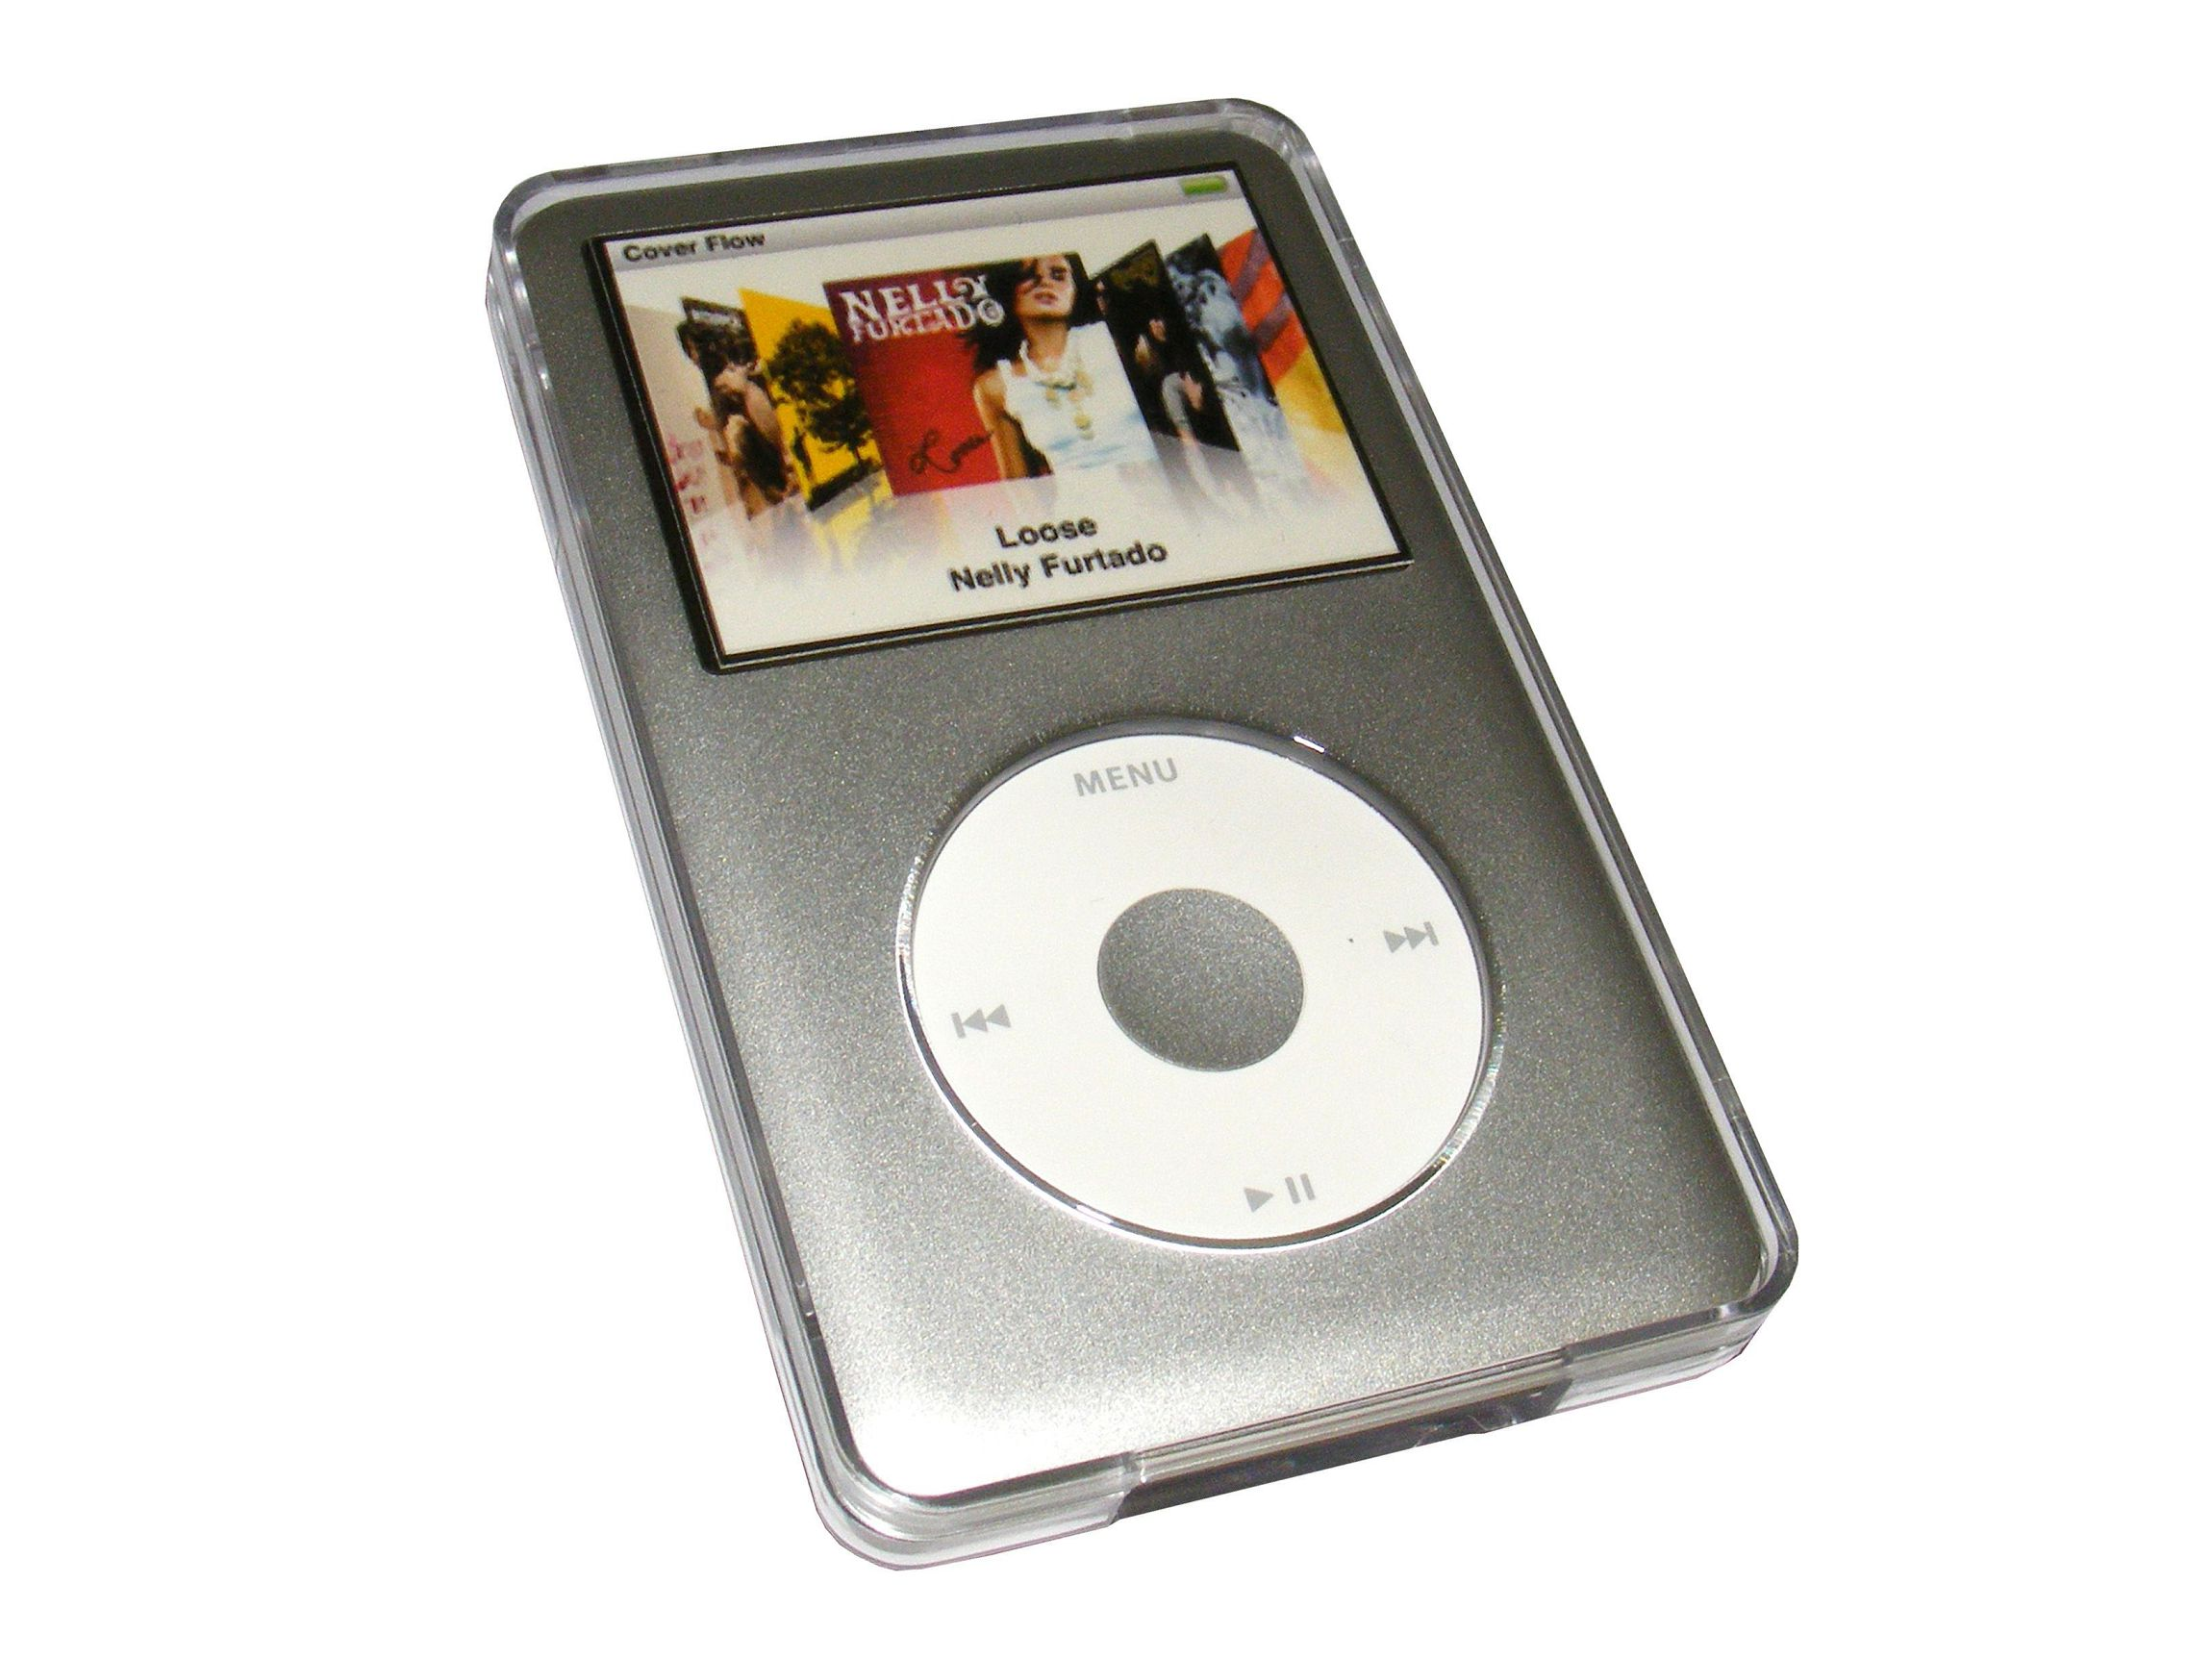 Apple Ipod Widescreen